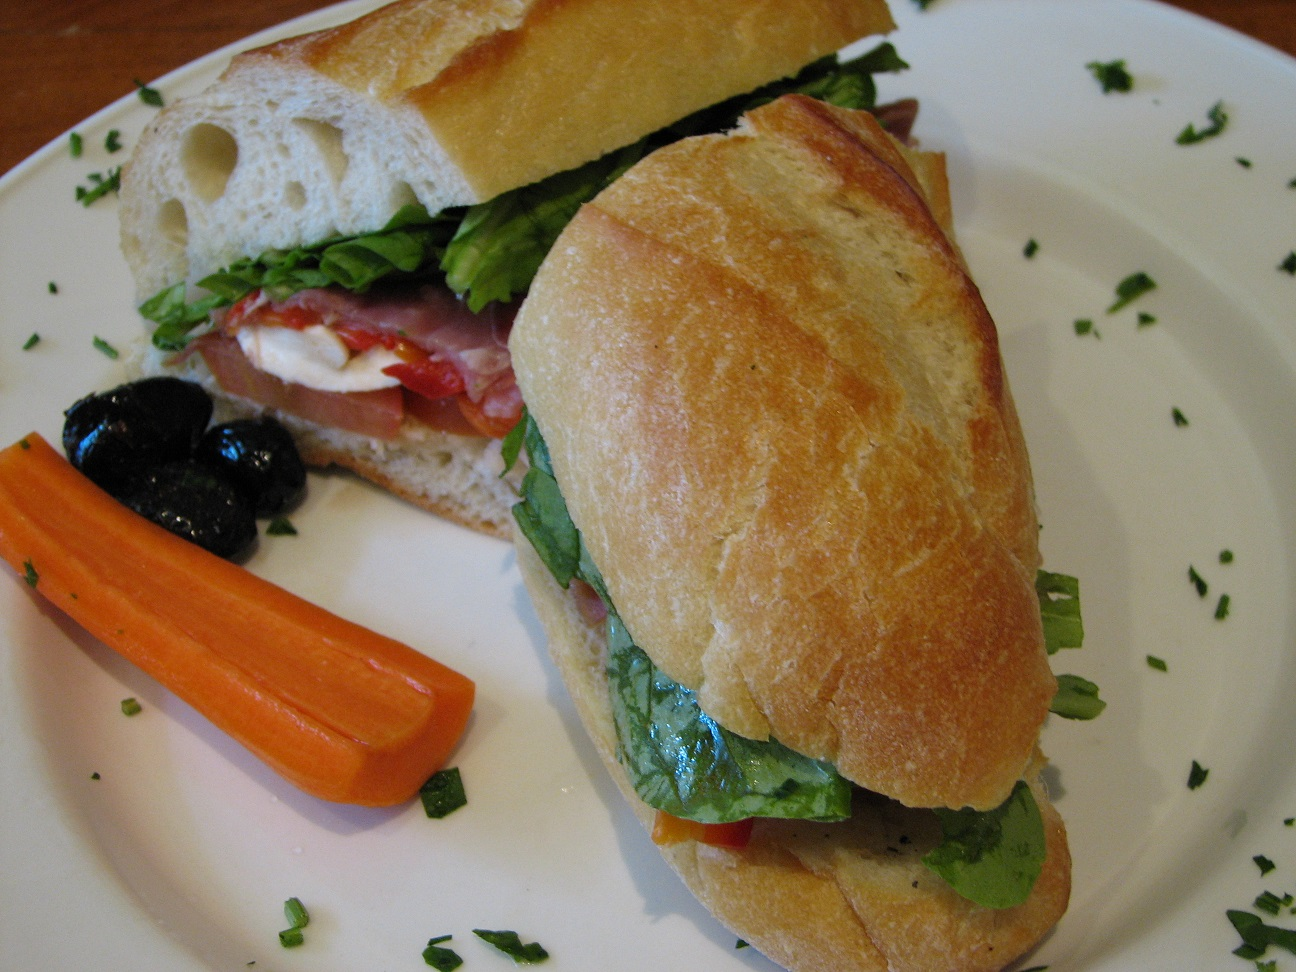 """Italian Sandwich"". Licensed under CC BY-SA 2.5 via Wikimedia Commons"